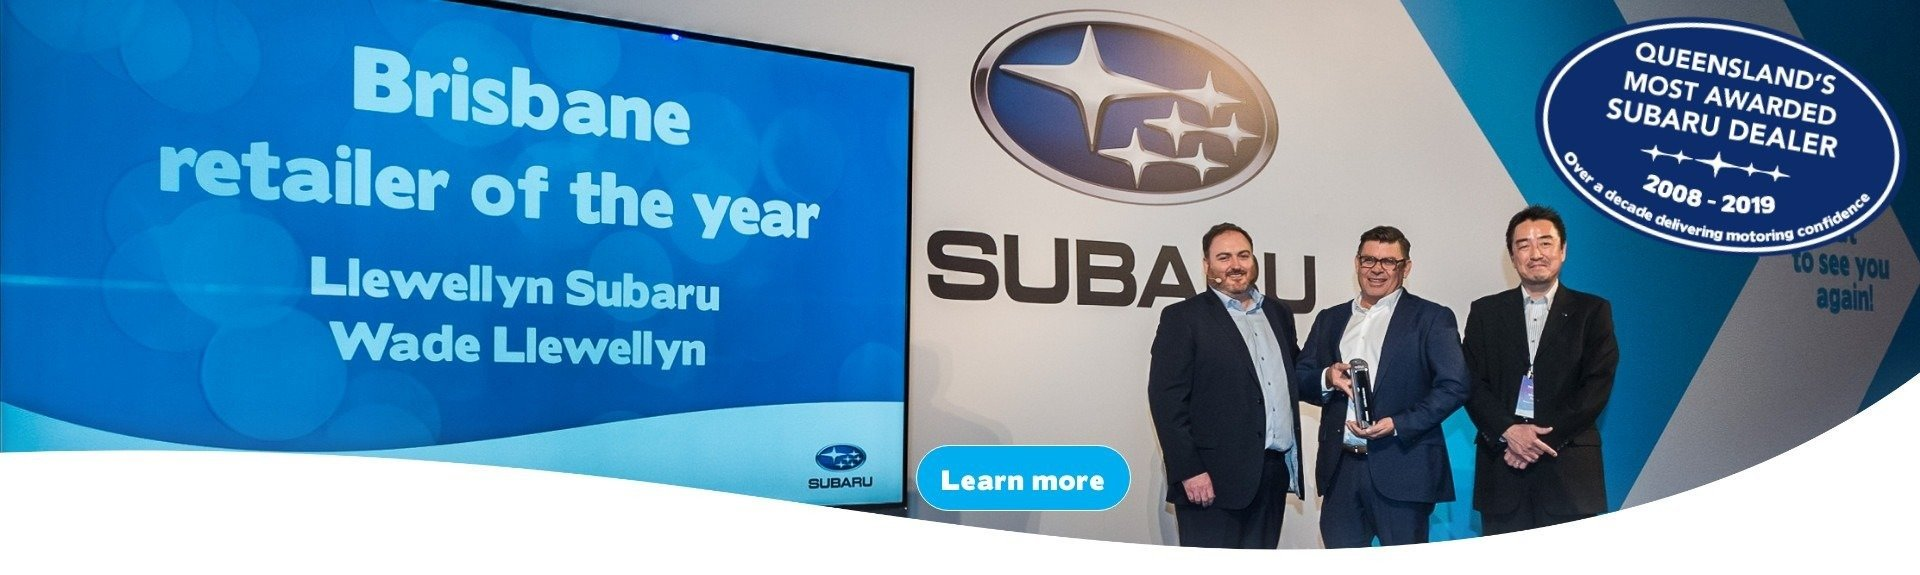 QLD-MOST-AWARDED-DEALER